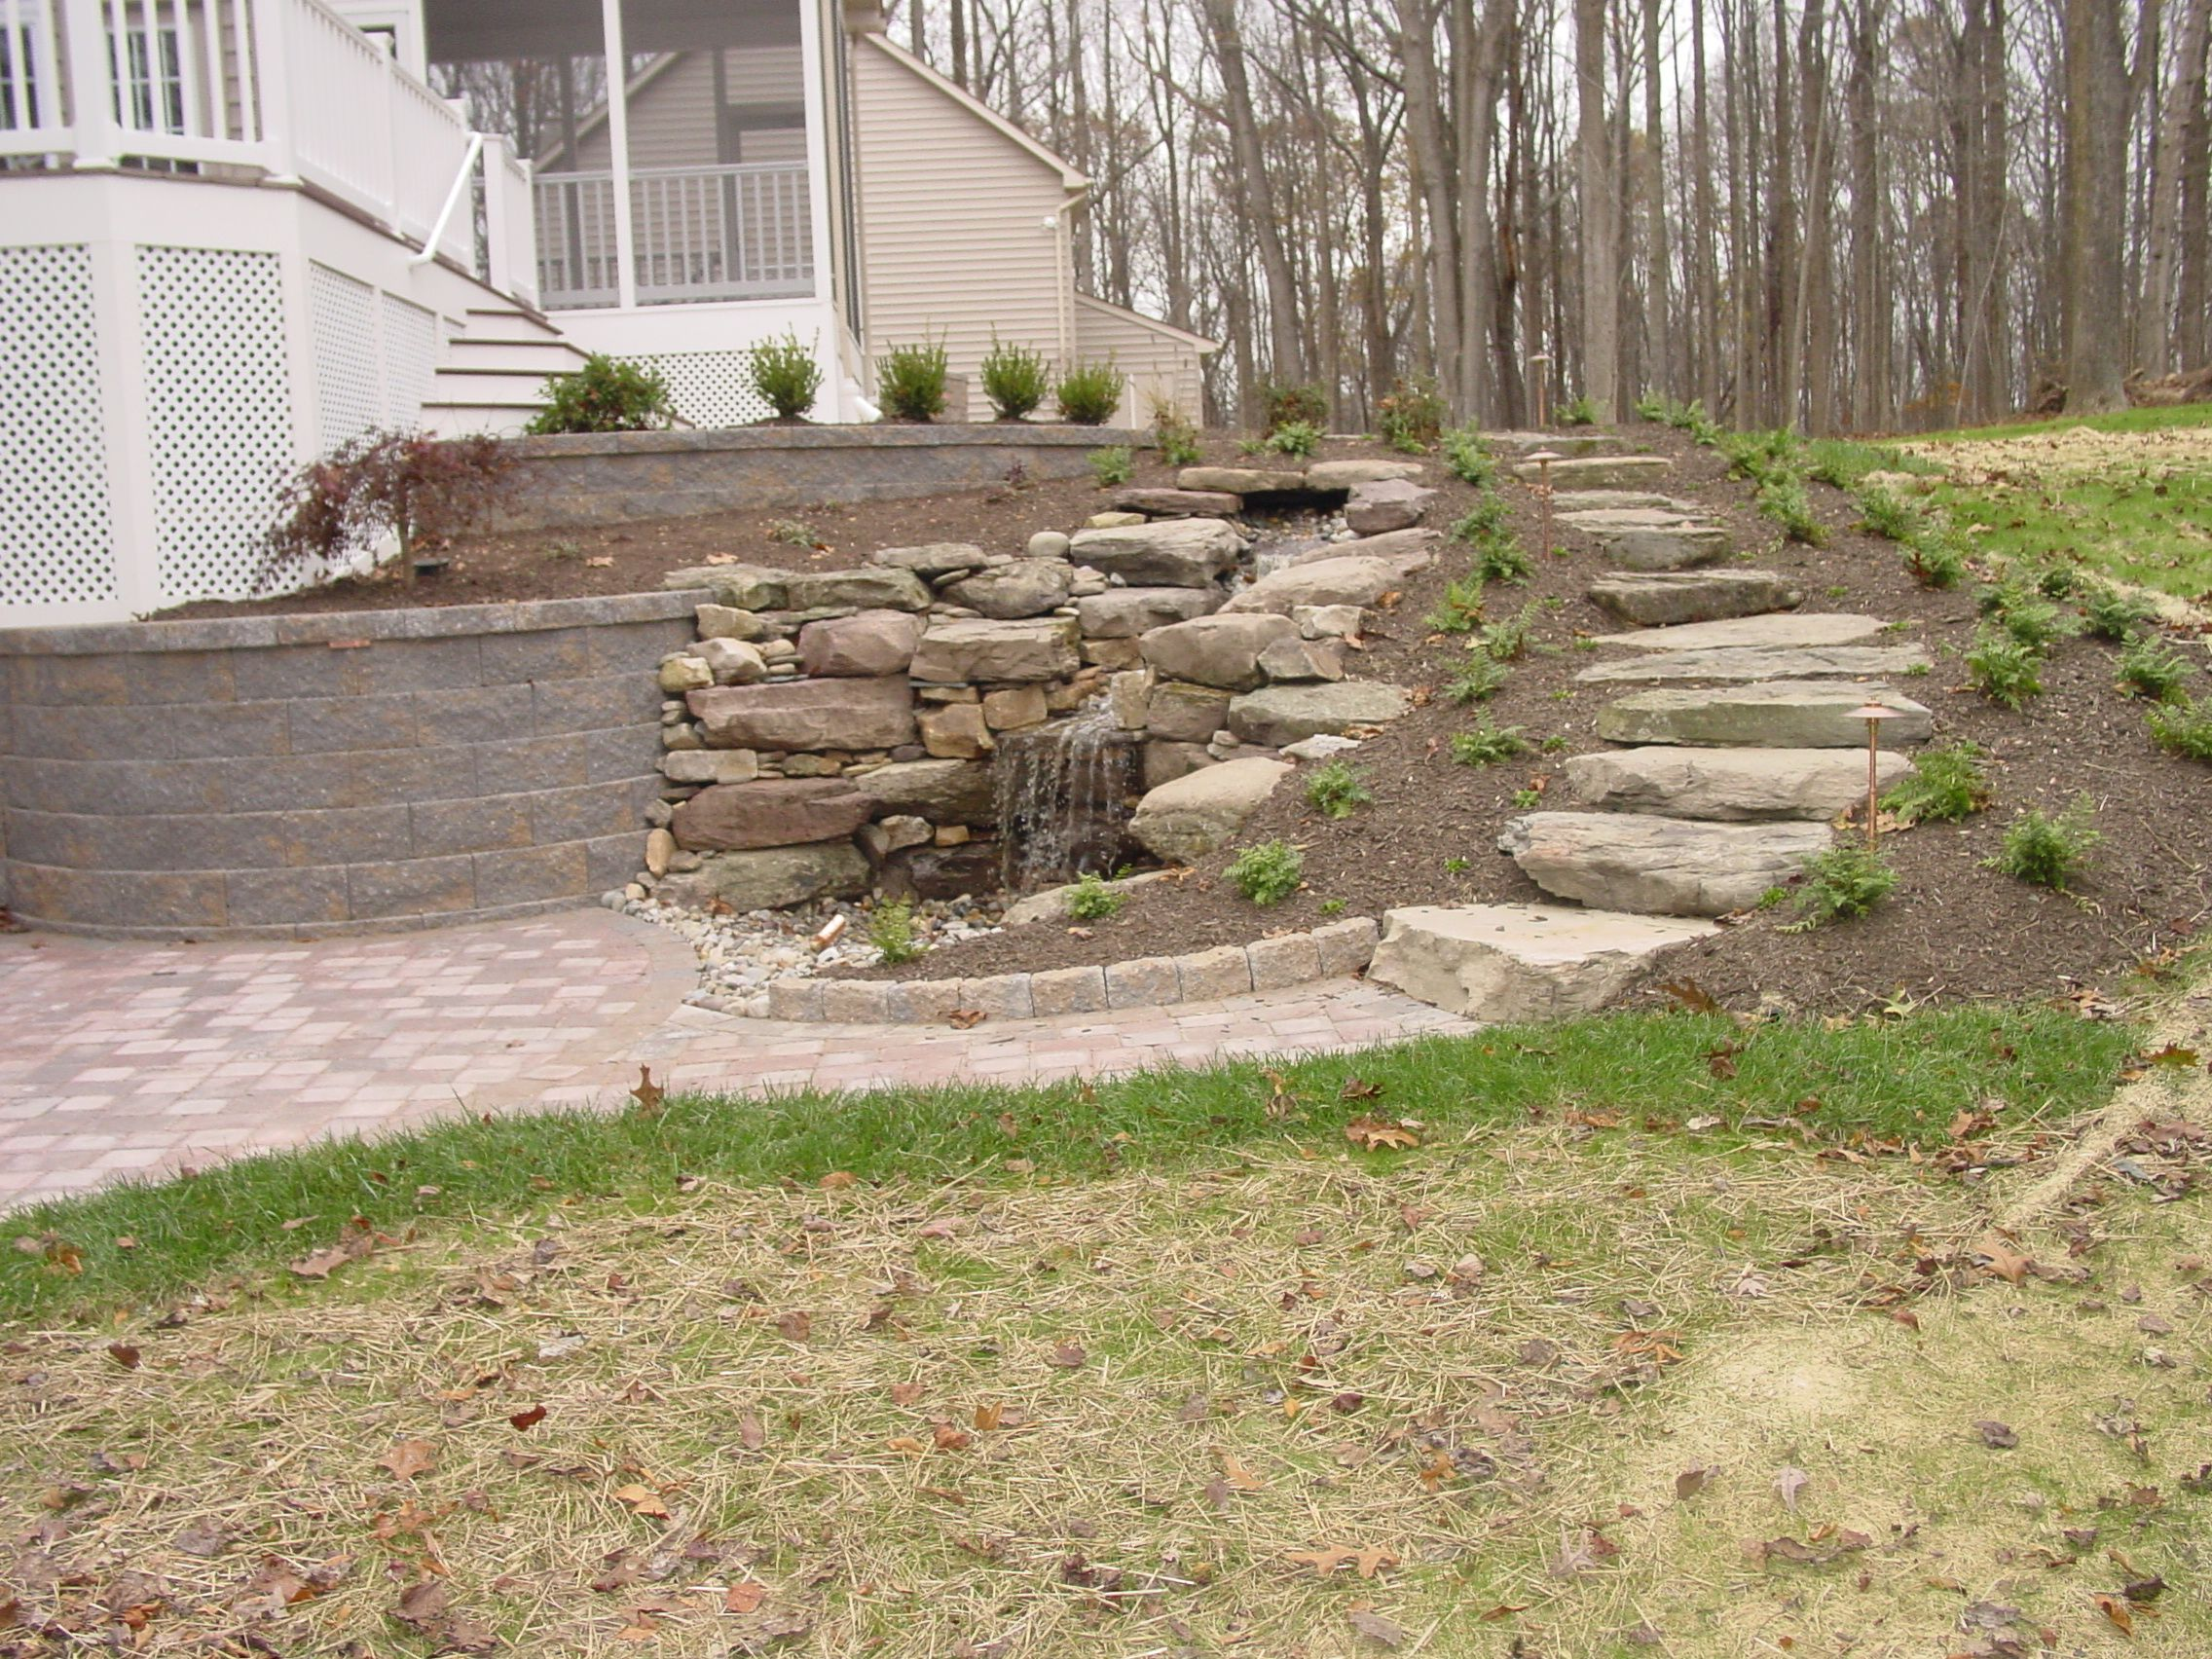 Landscaping For A Steep Walk Out Basement Yard Google Search Hillside Landscaping Backyard Landscaping Backyard Landscaping Plans